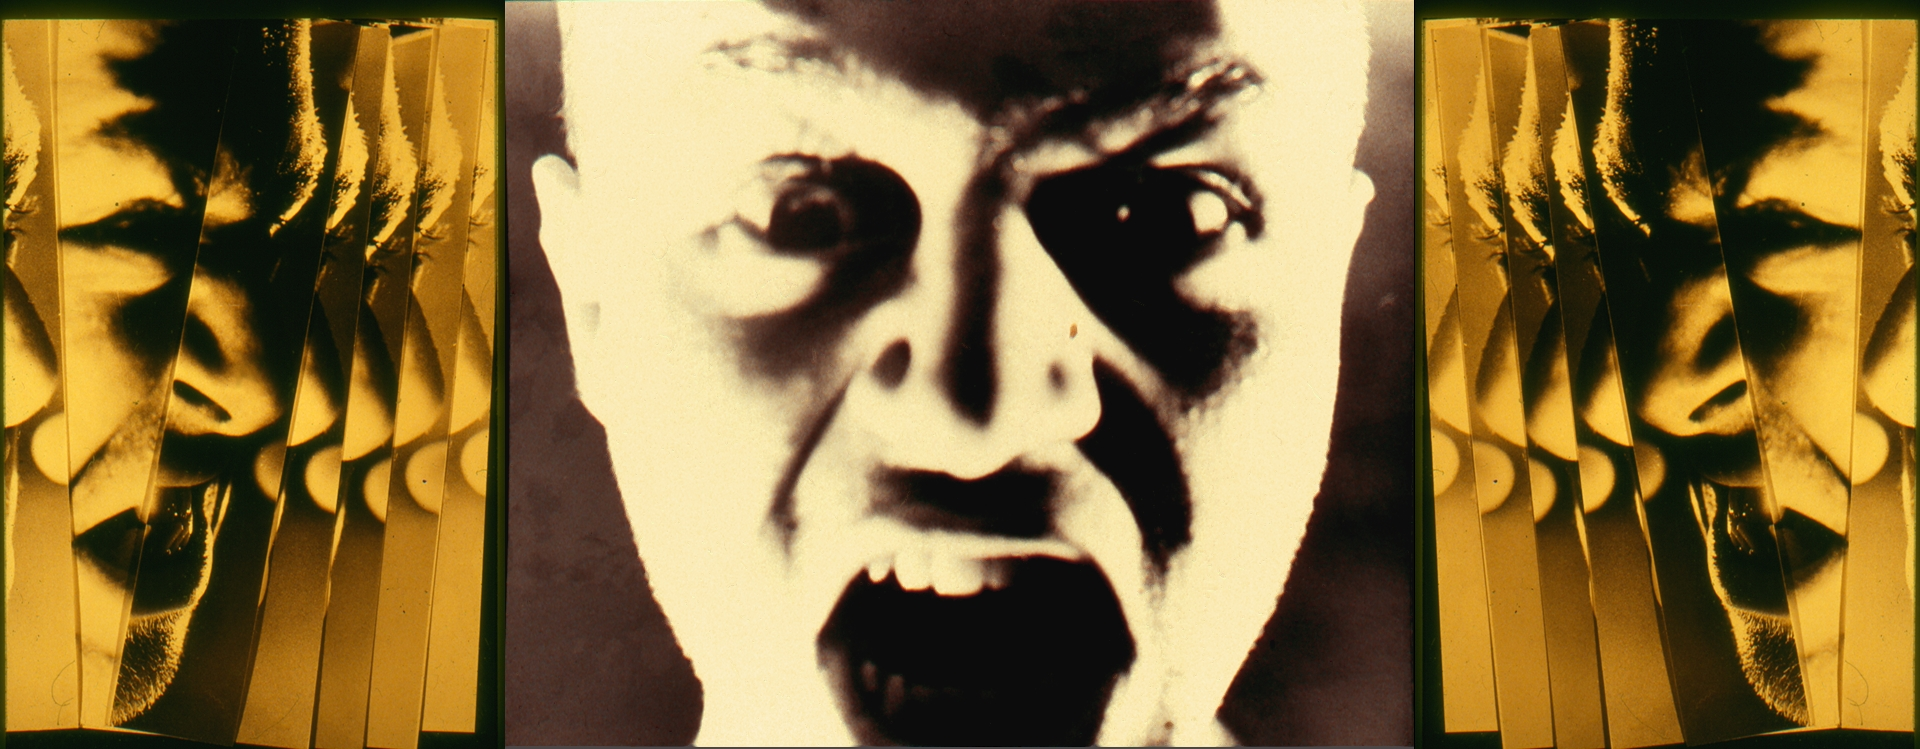 Test Dept., triptych scream